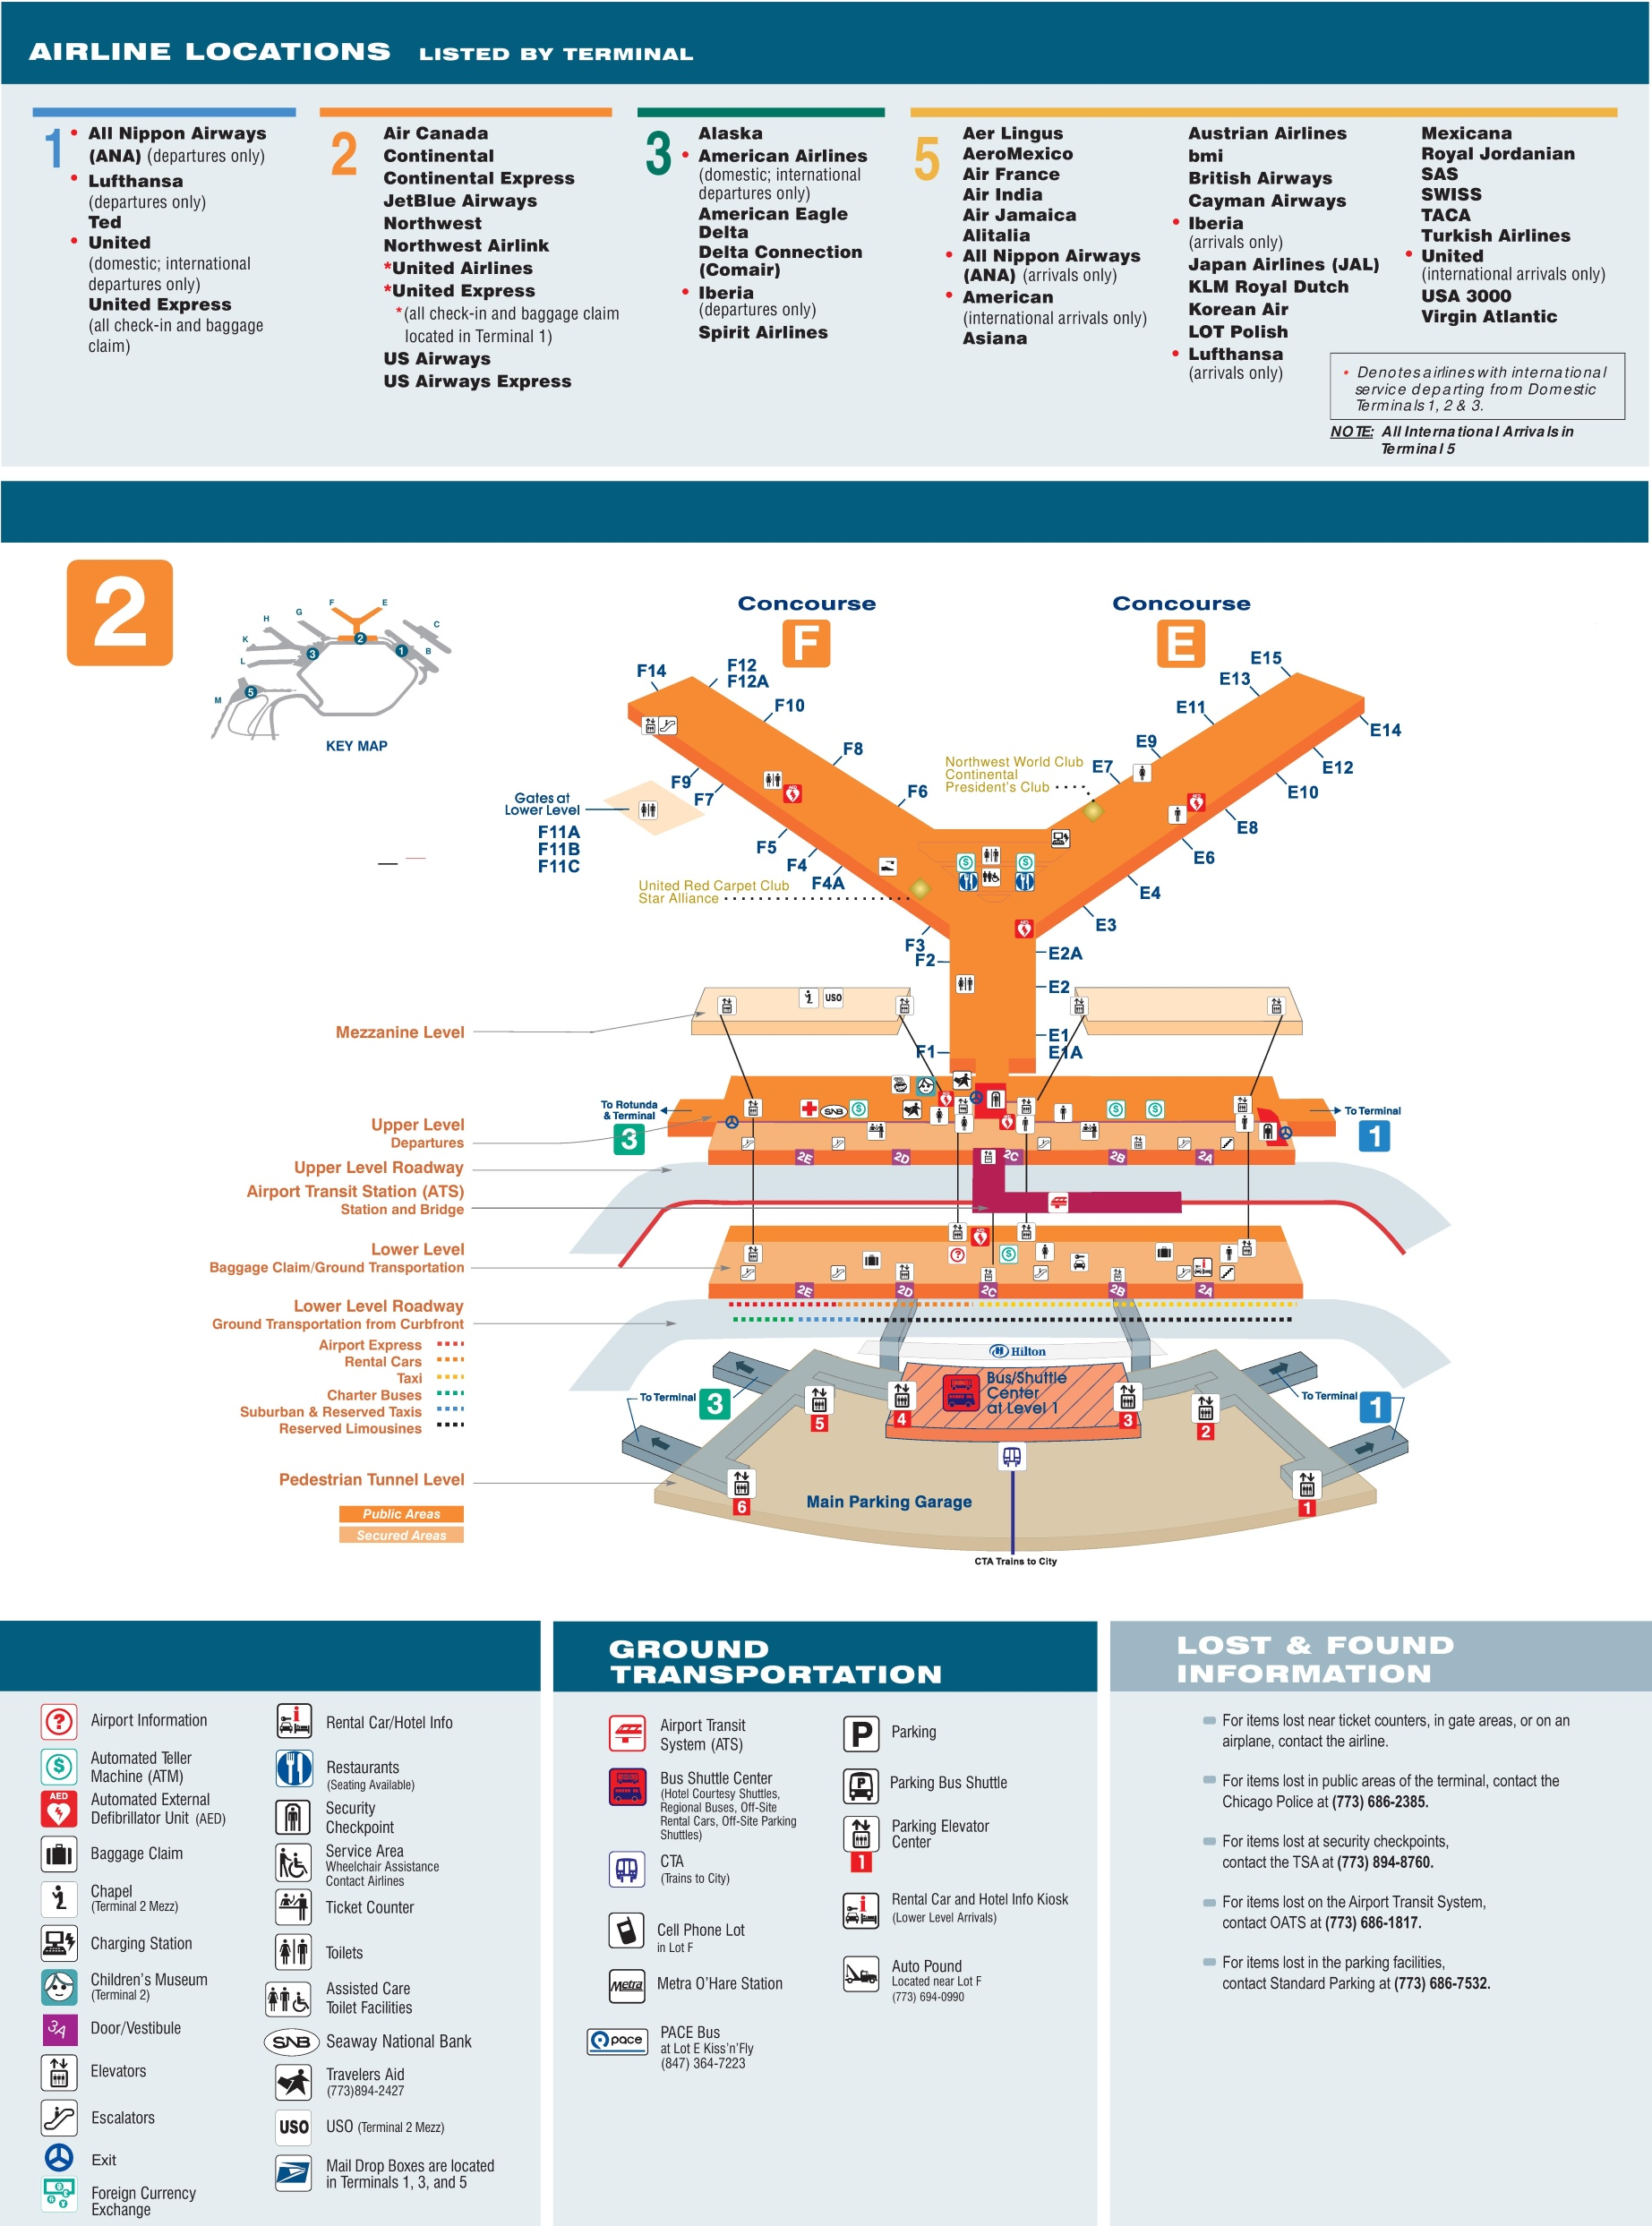 OHare Airport terminal 2 map